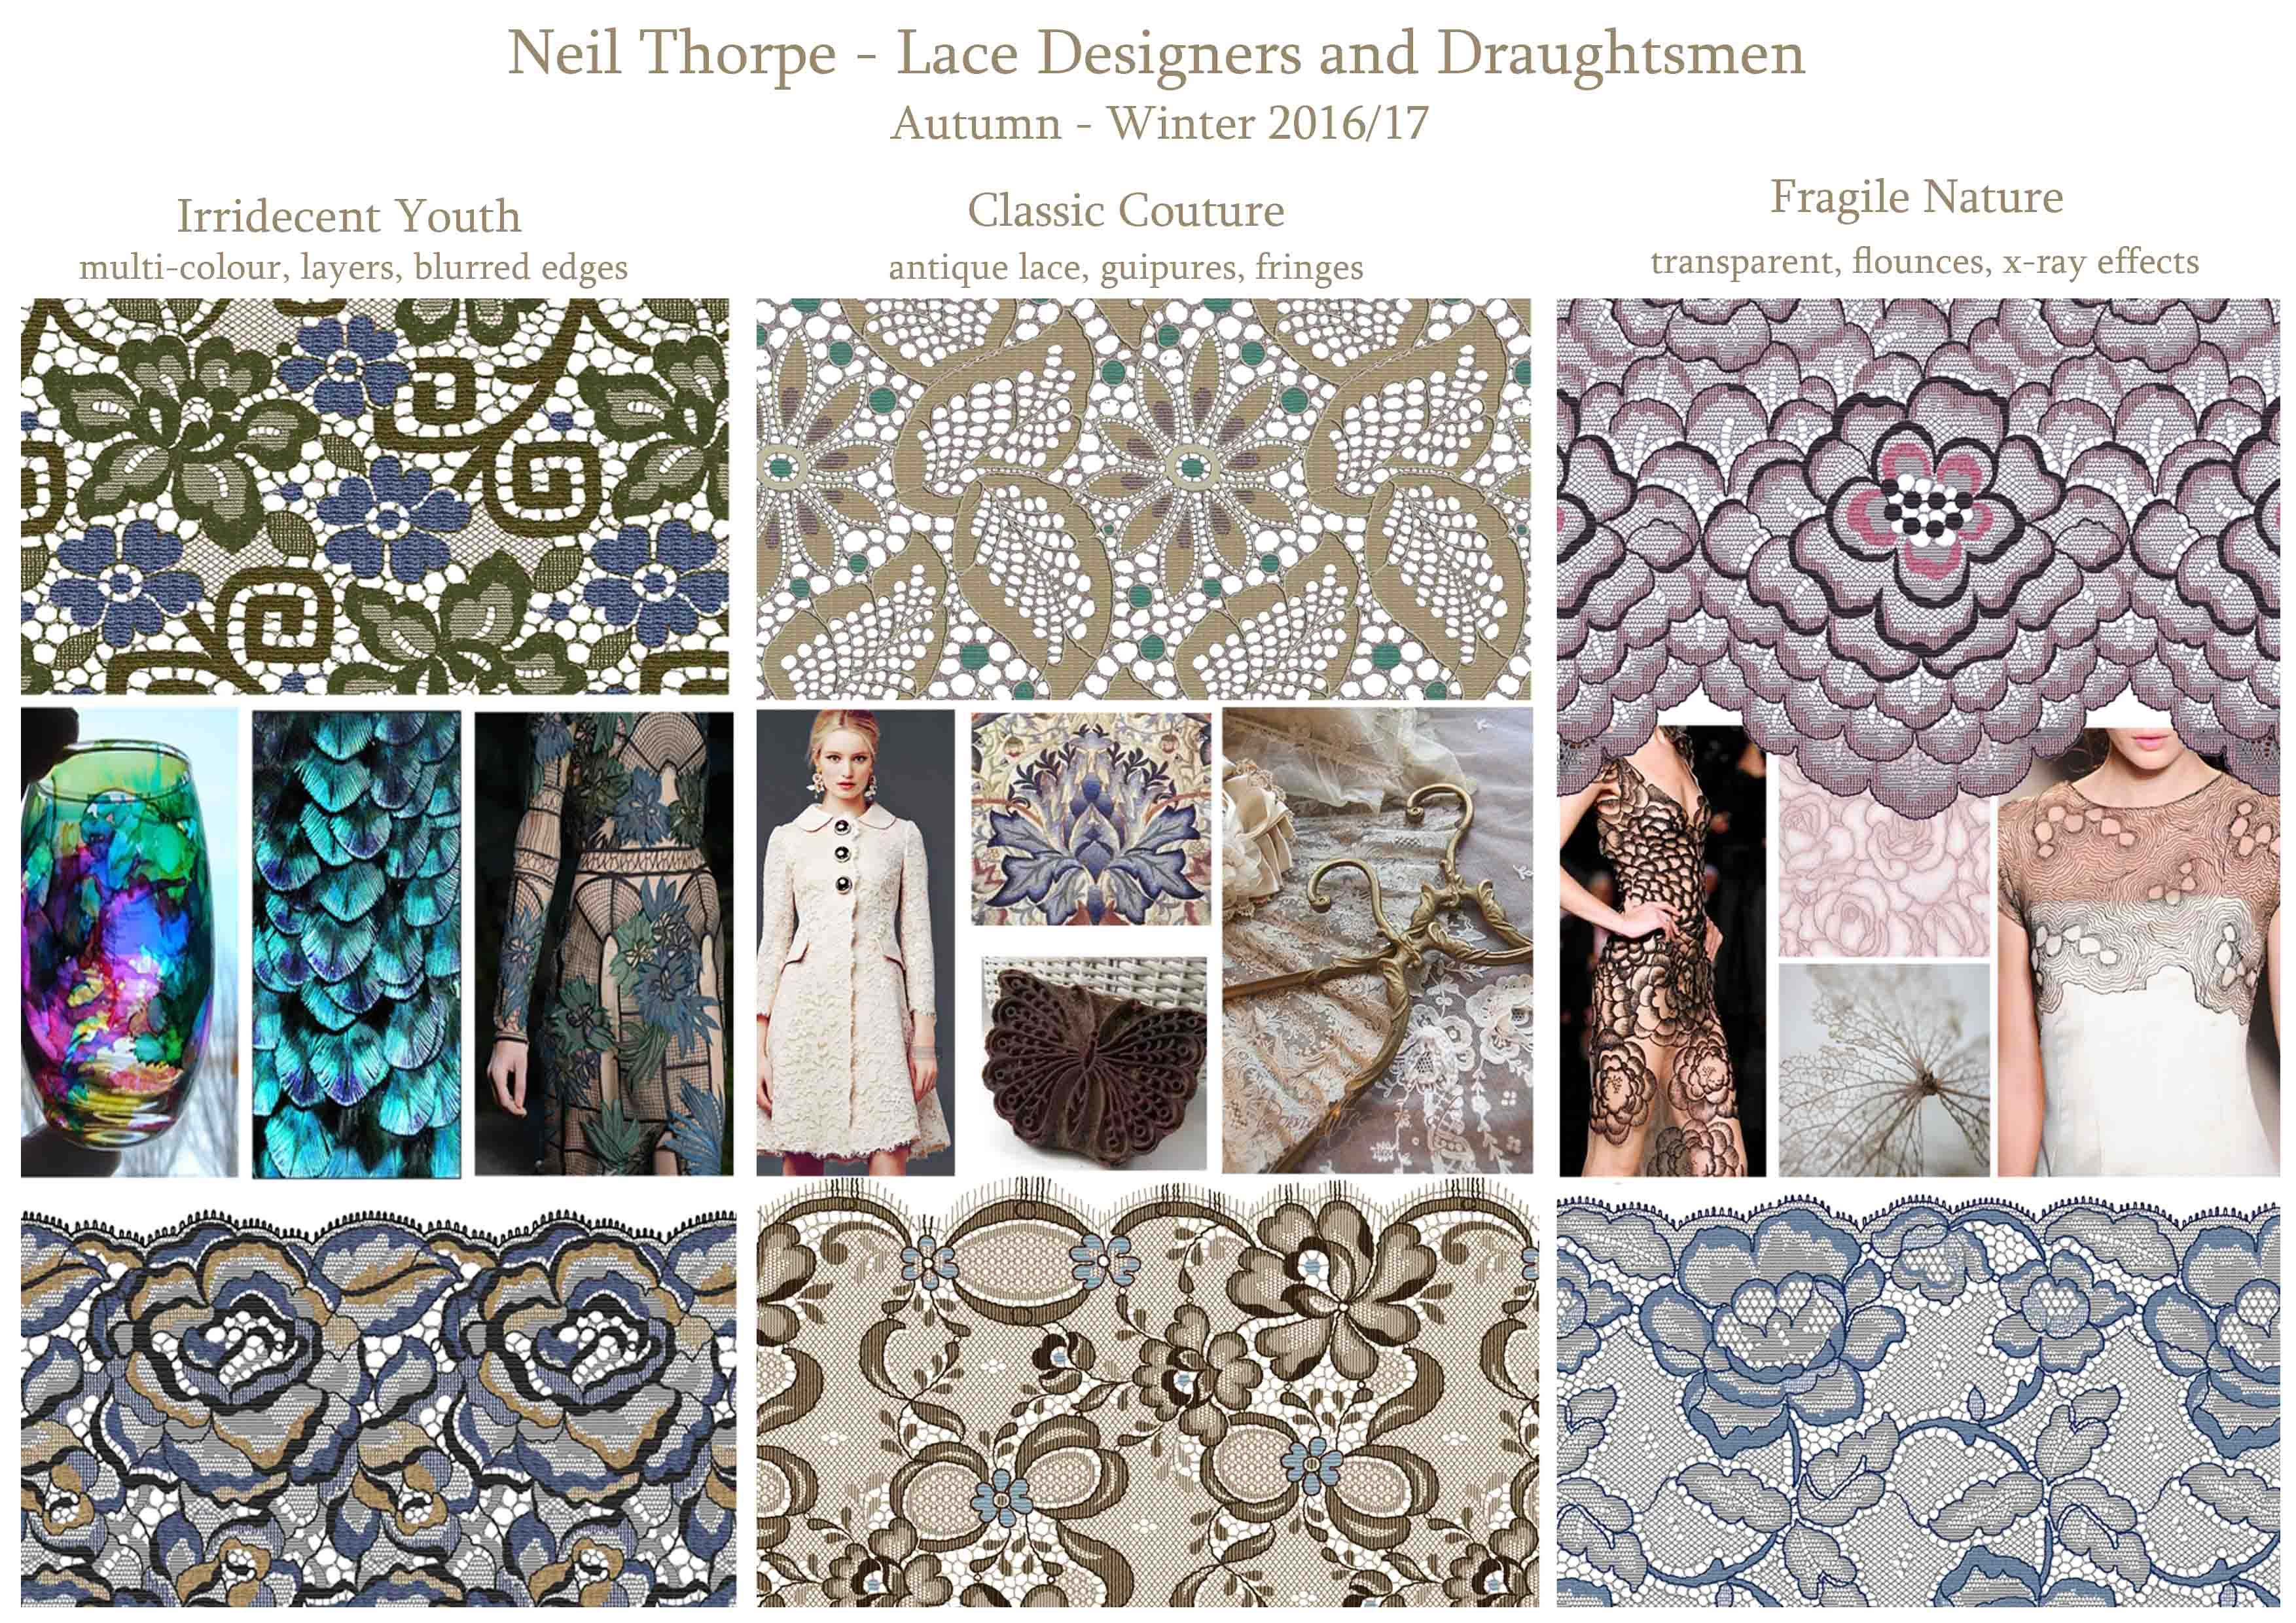 Lace trends autumn winter 16/17 | Fashion AW 2016 2017 ...